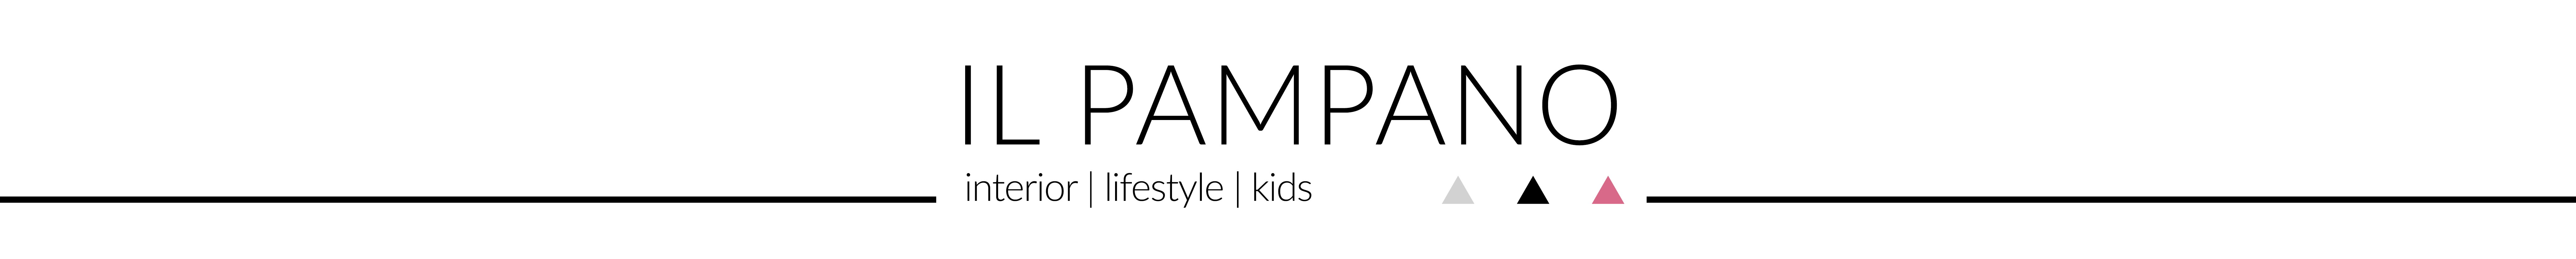 Il Pampano – interior | lifestyle | kids